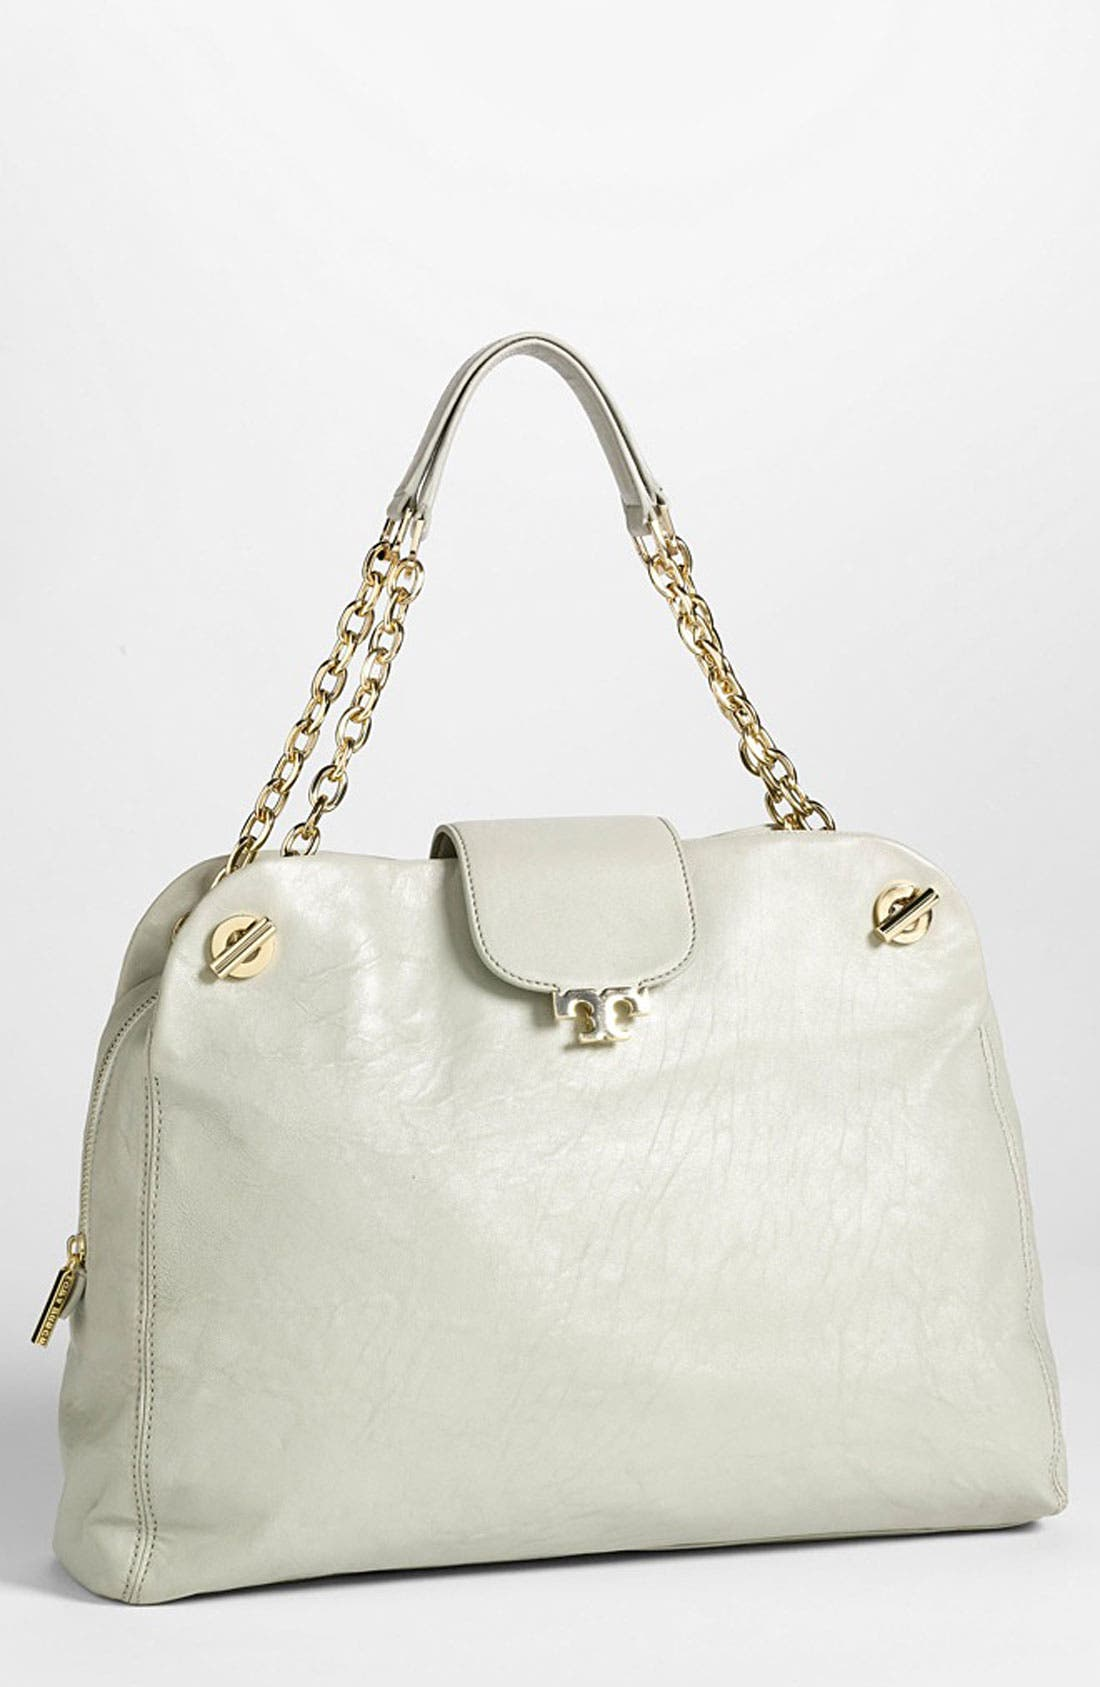 Alternate Image 1 Selected - Tory Burch 'Megan' Satchel